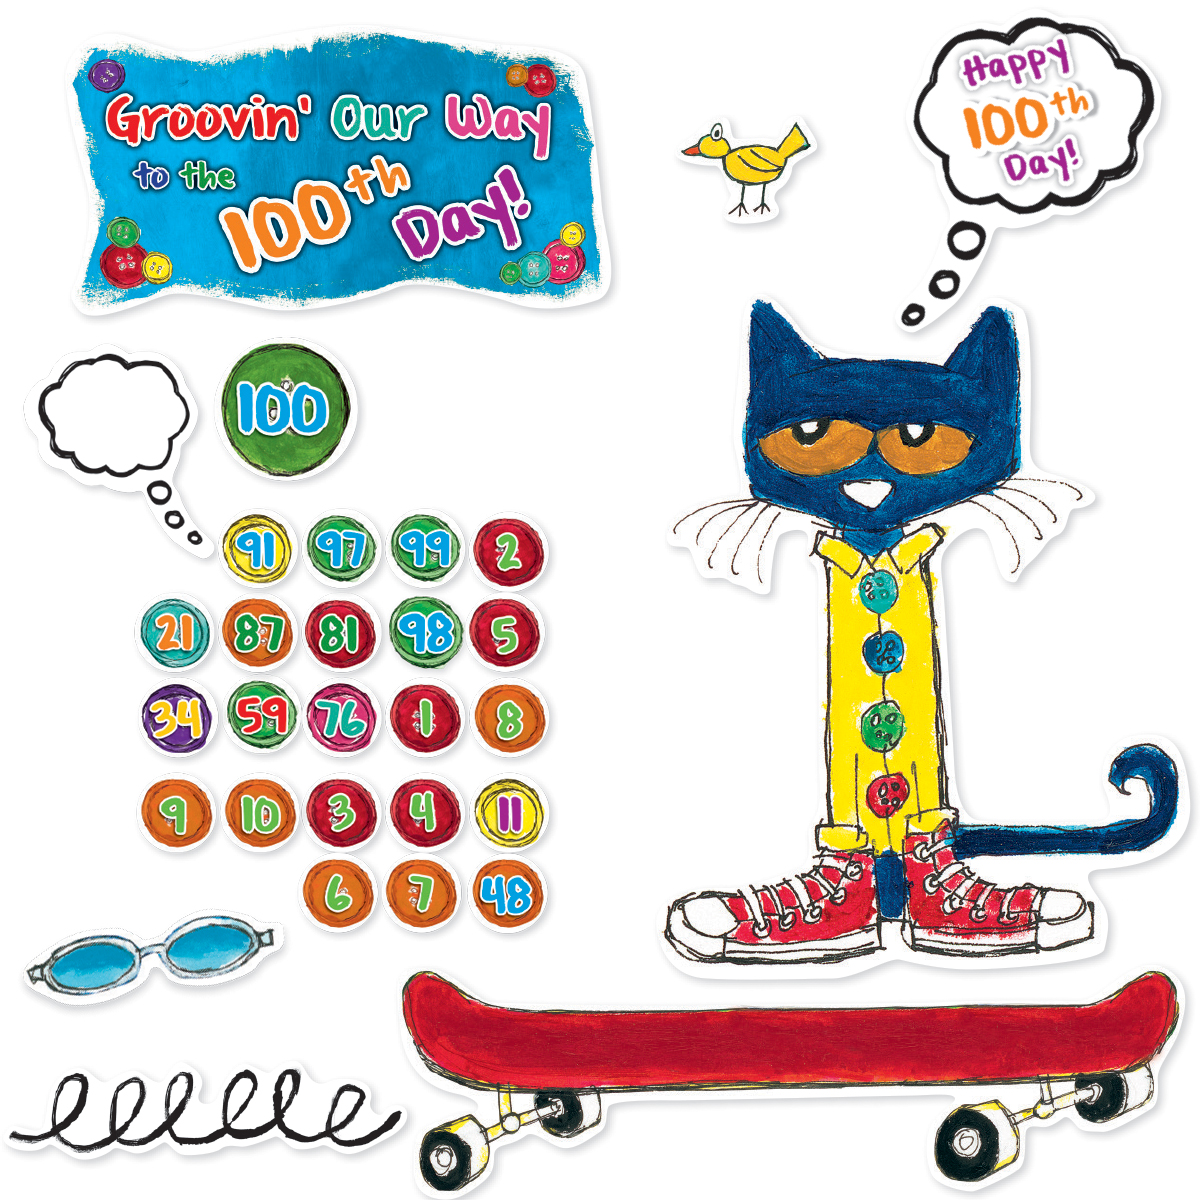 Pete the Cat© 100th Day Bulletin Board Set